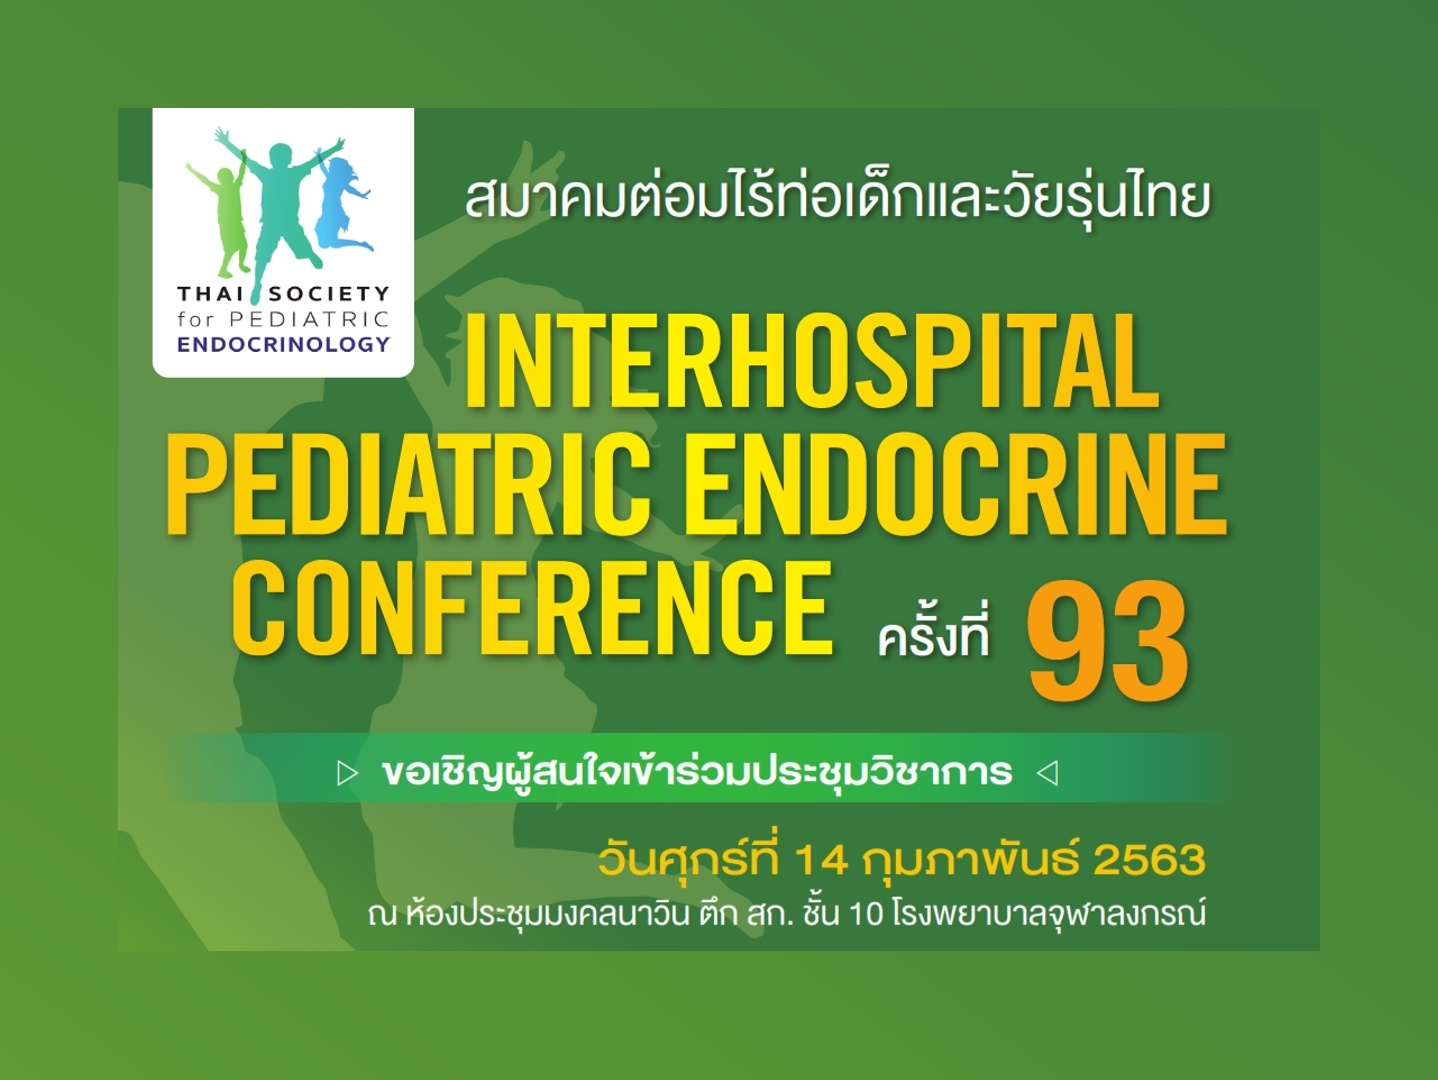 Interhospital Pediatric Endocrine Conference ครั้งที่ 93